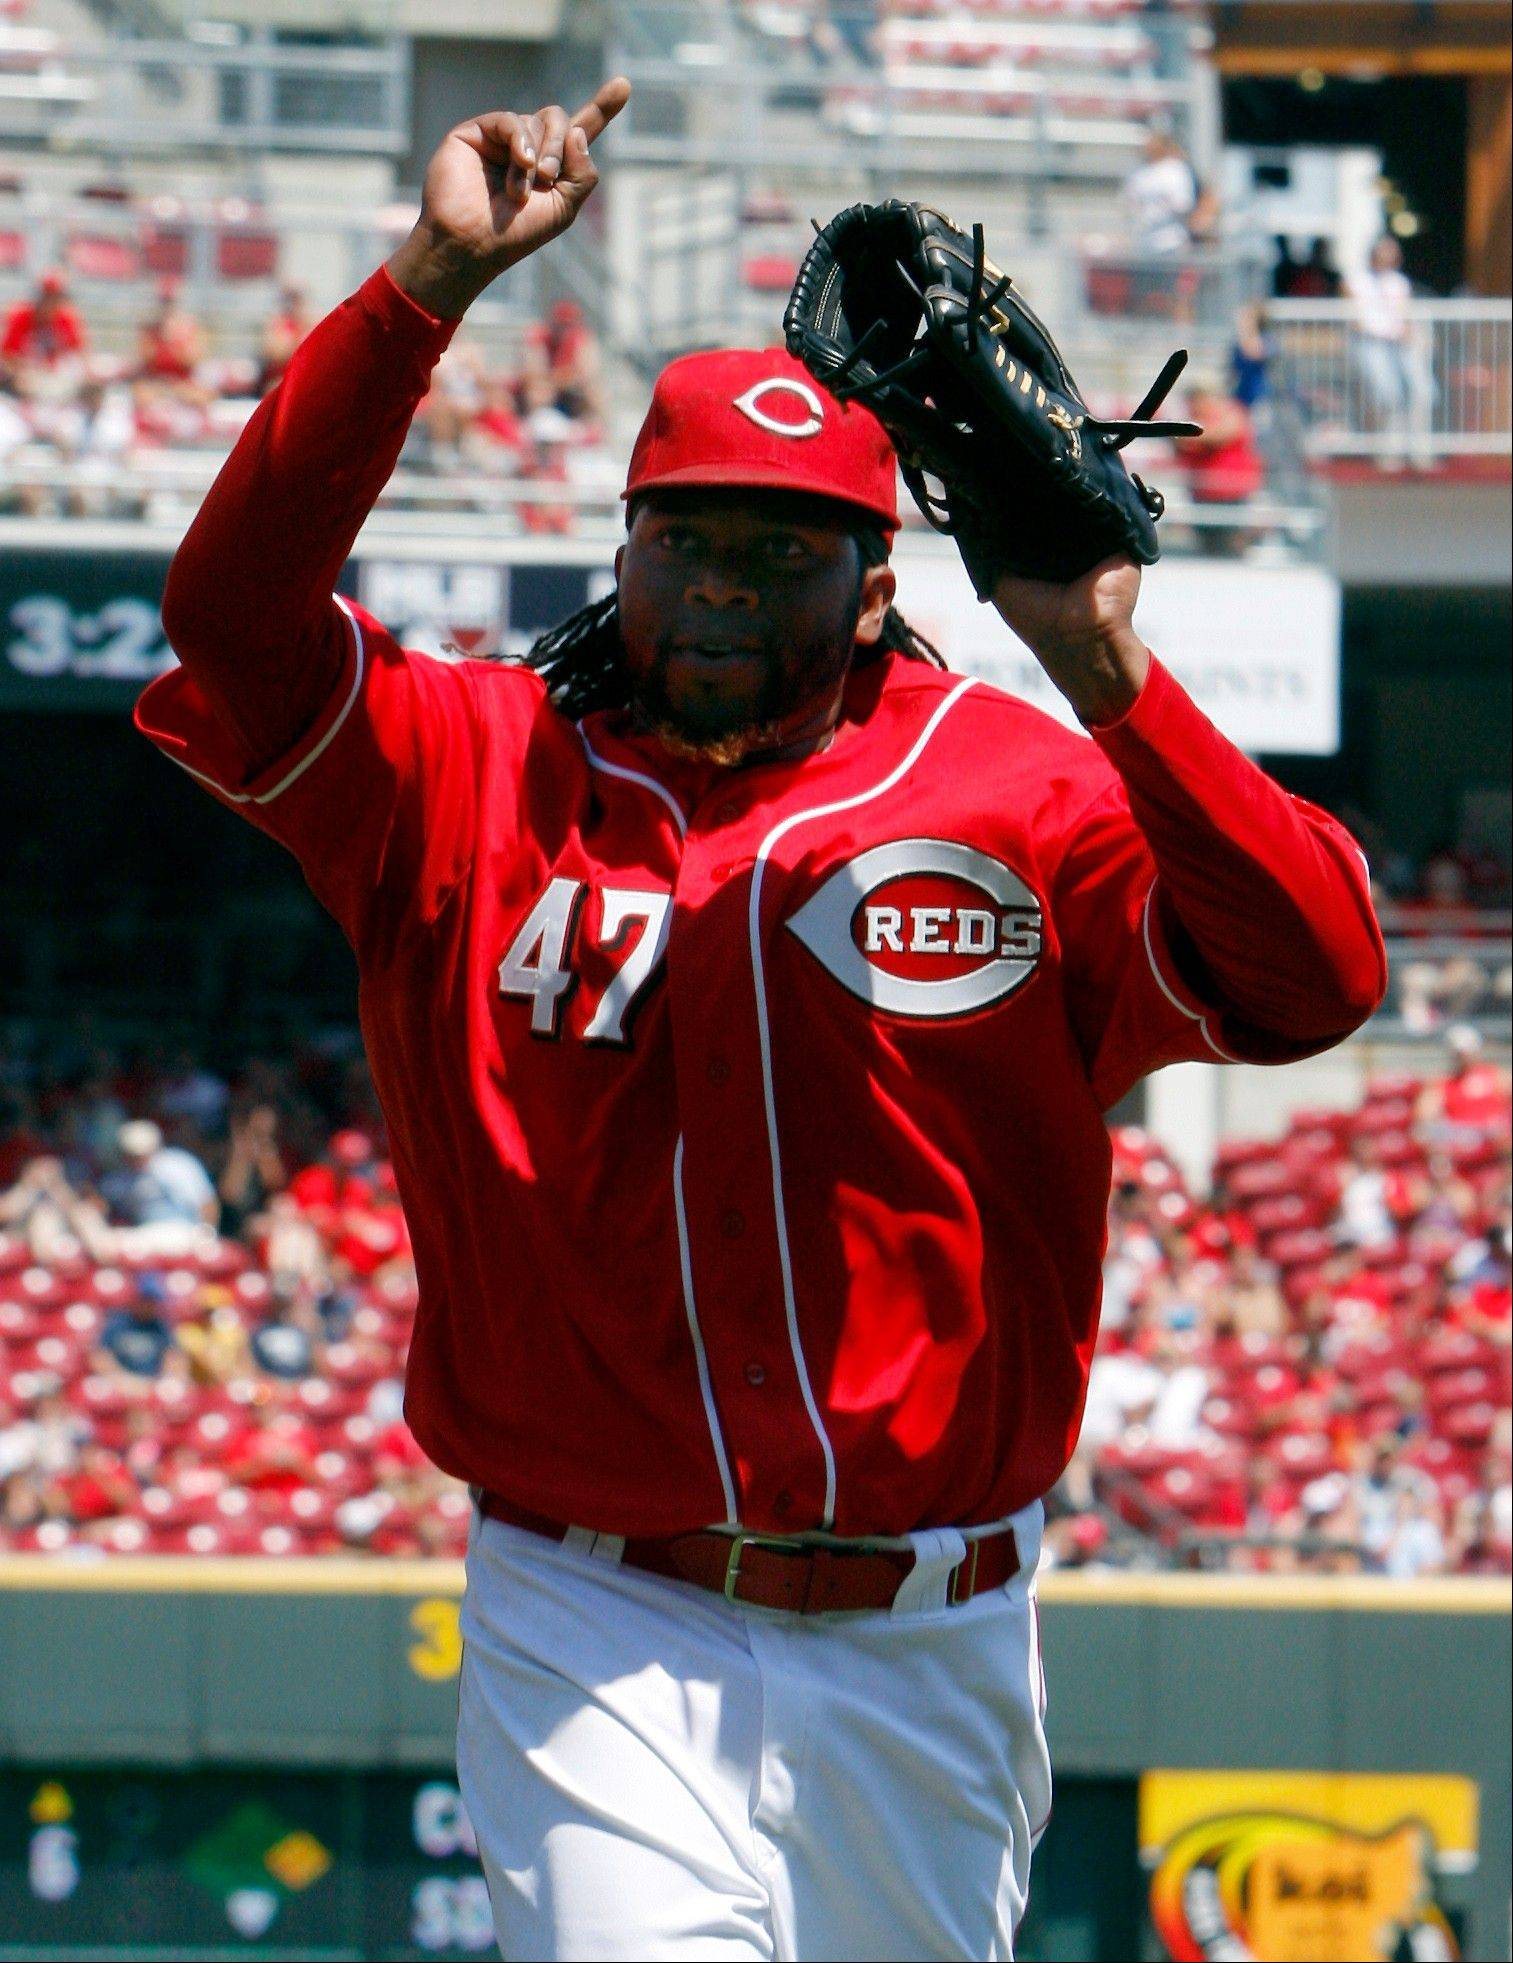 Cincinnati starting pitcher Johnny Cueto walks off the field in the seventh inning Sunday at home against Milwaukee Brewers. The Reds won 2-1.